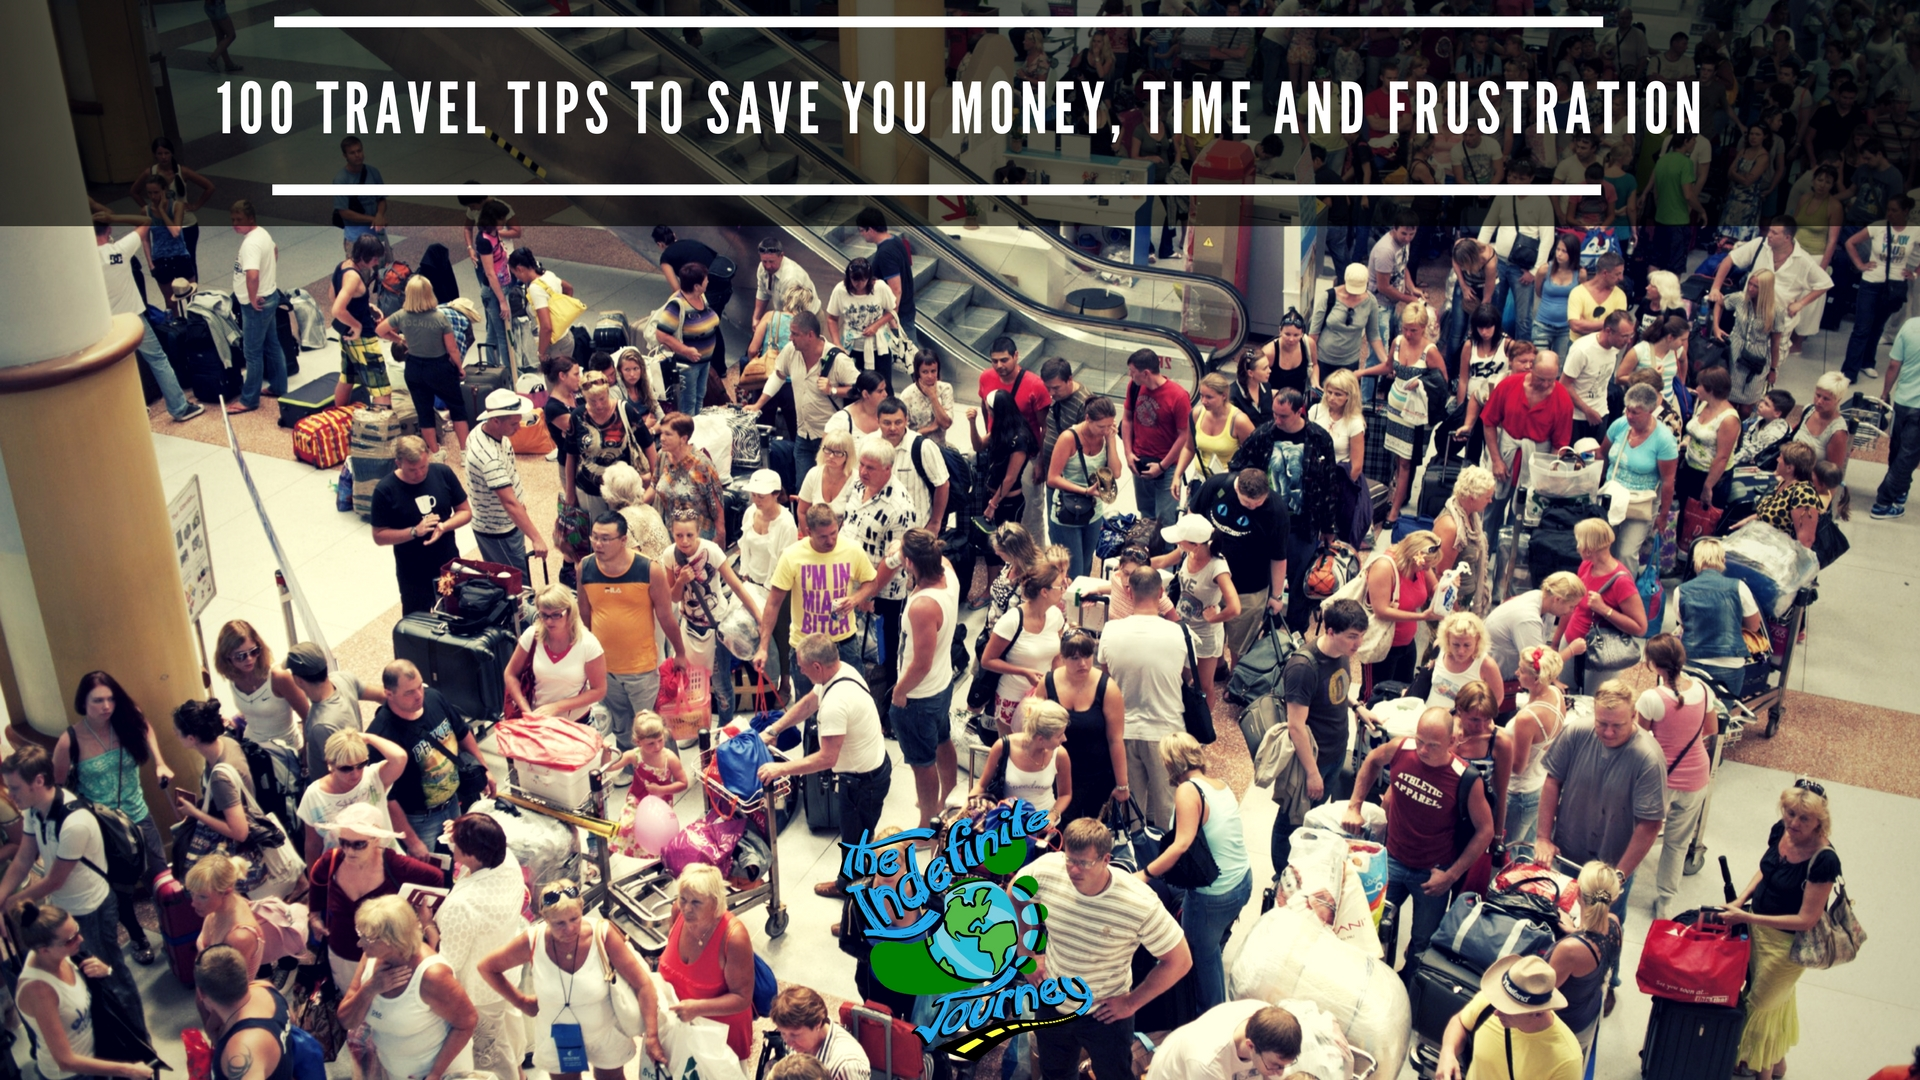 100 Travel Tips To Save You Money, Time and Frustration